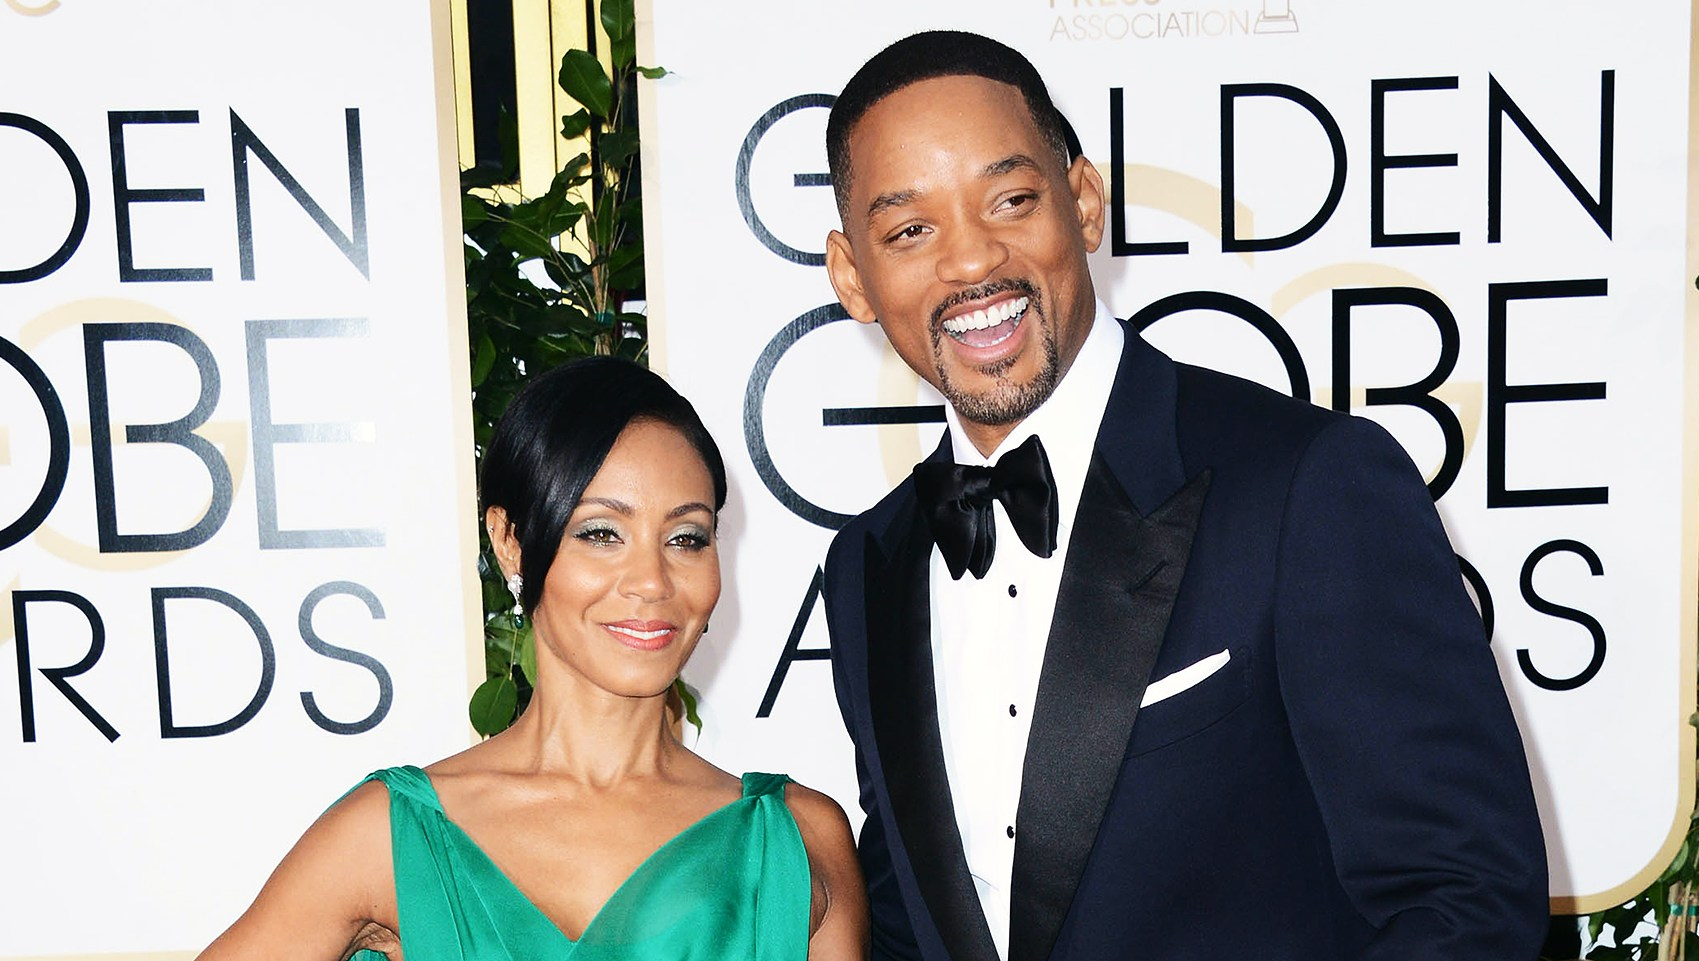 Jada Pinkett Smith Will Smith Don't Say They're Married Anymore